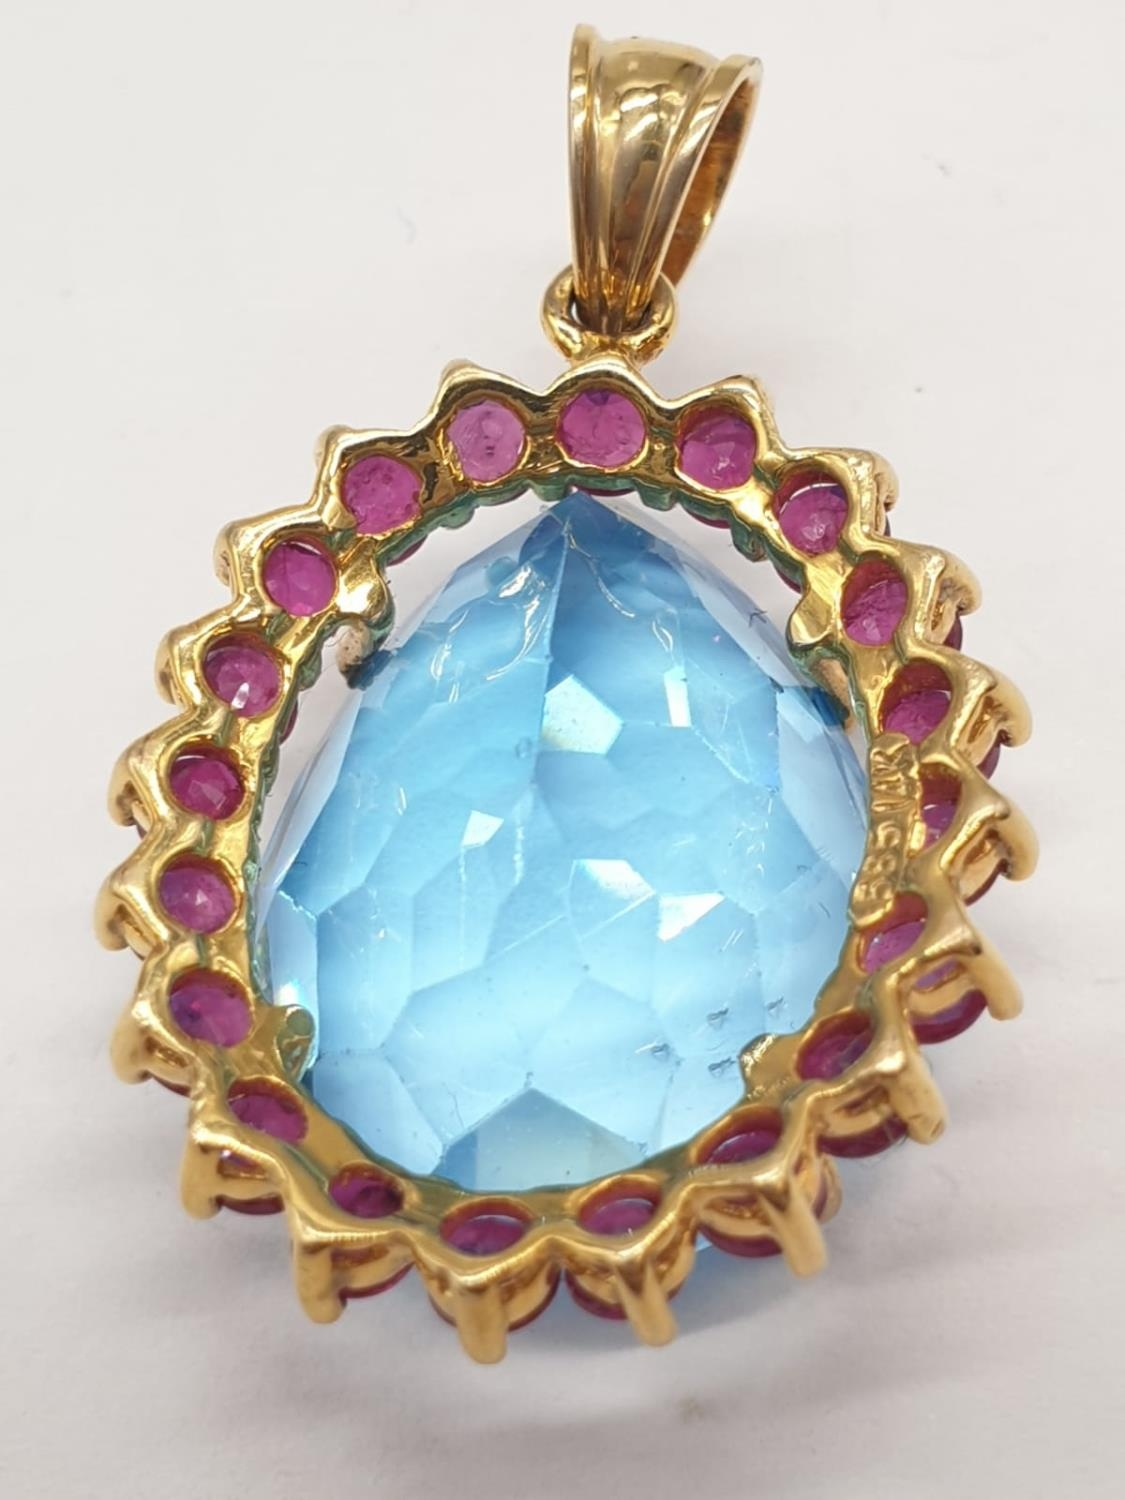 Topaz and ruby in 14ct gold pendant, weight 8g - Image 4 of 5